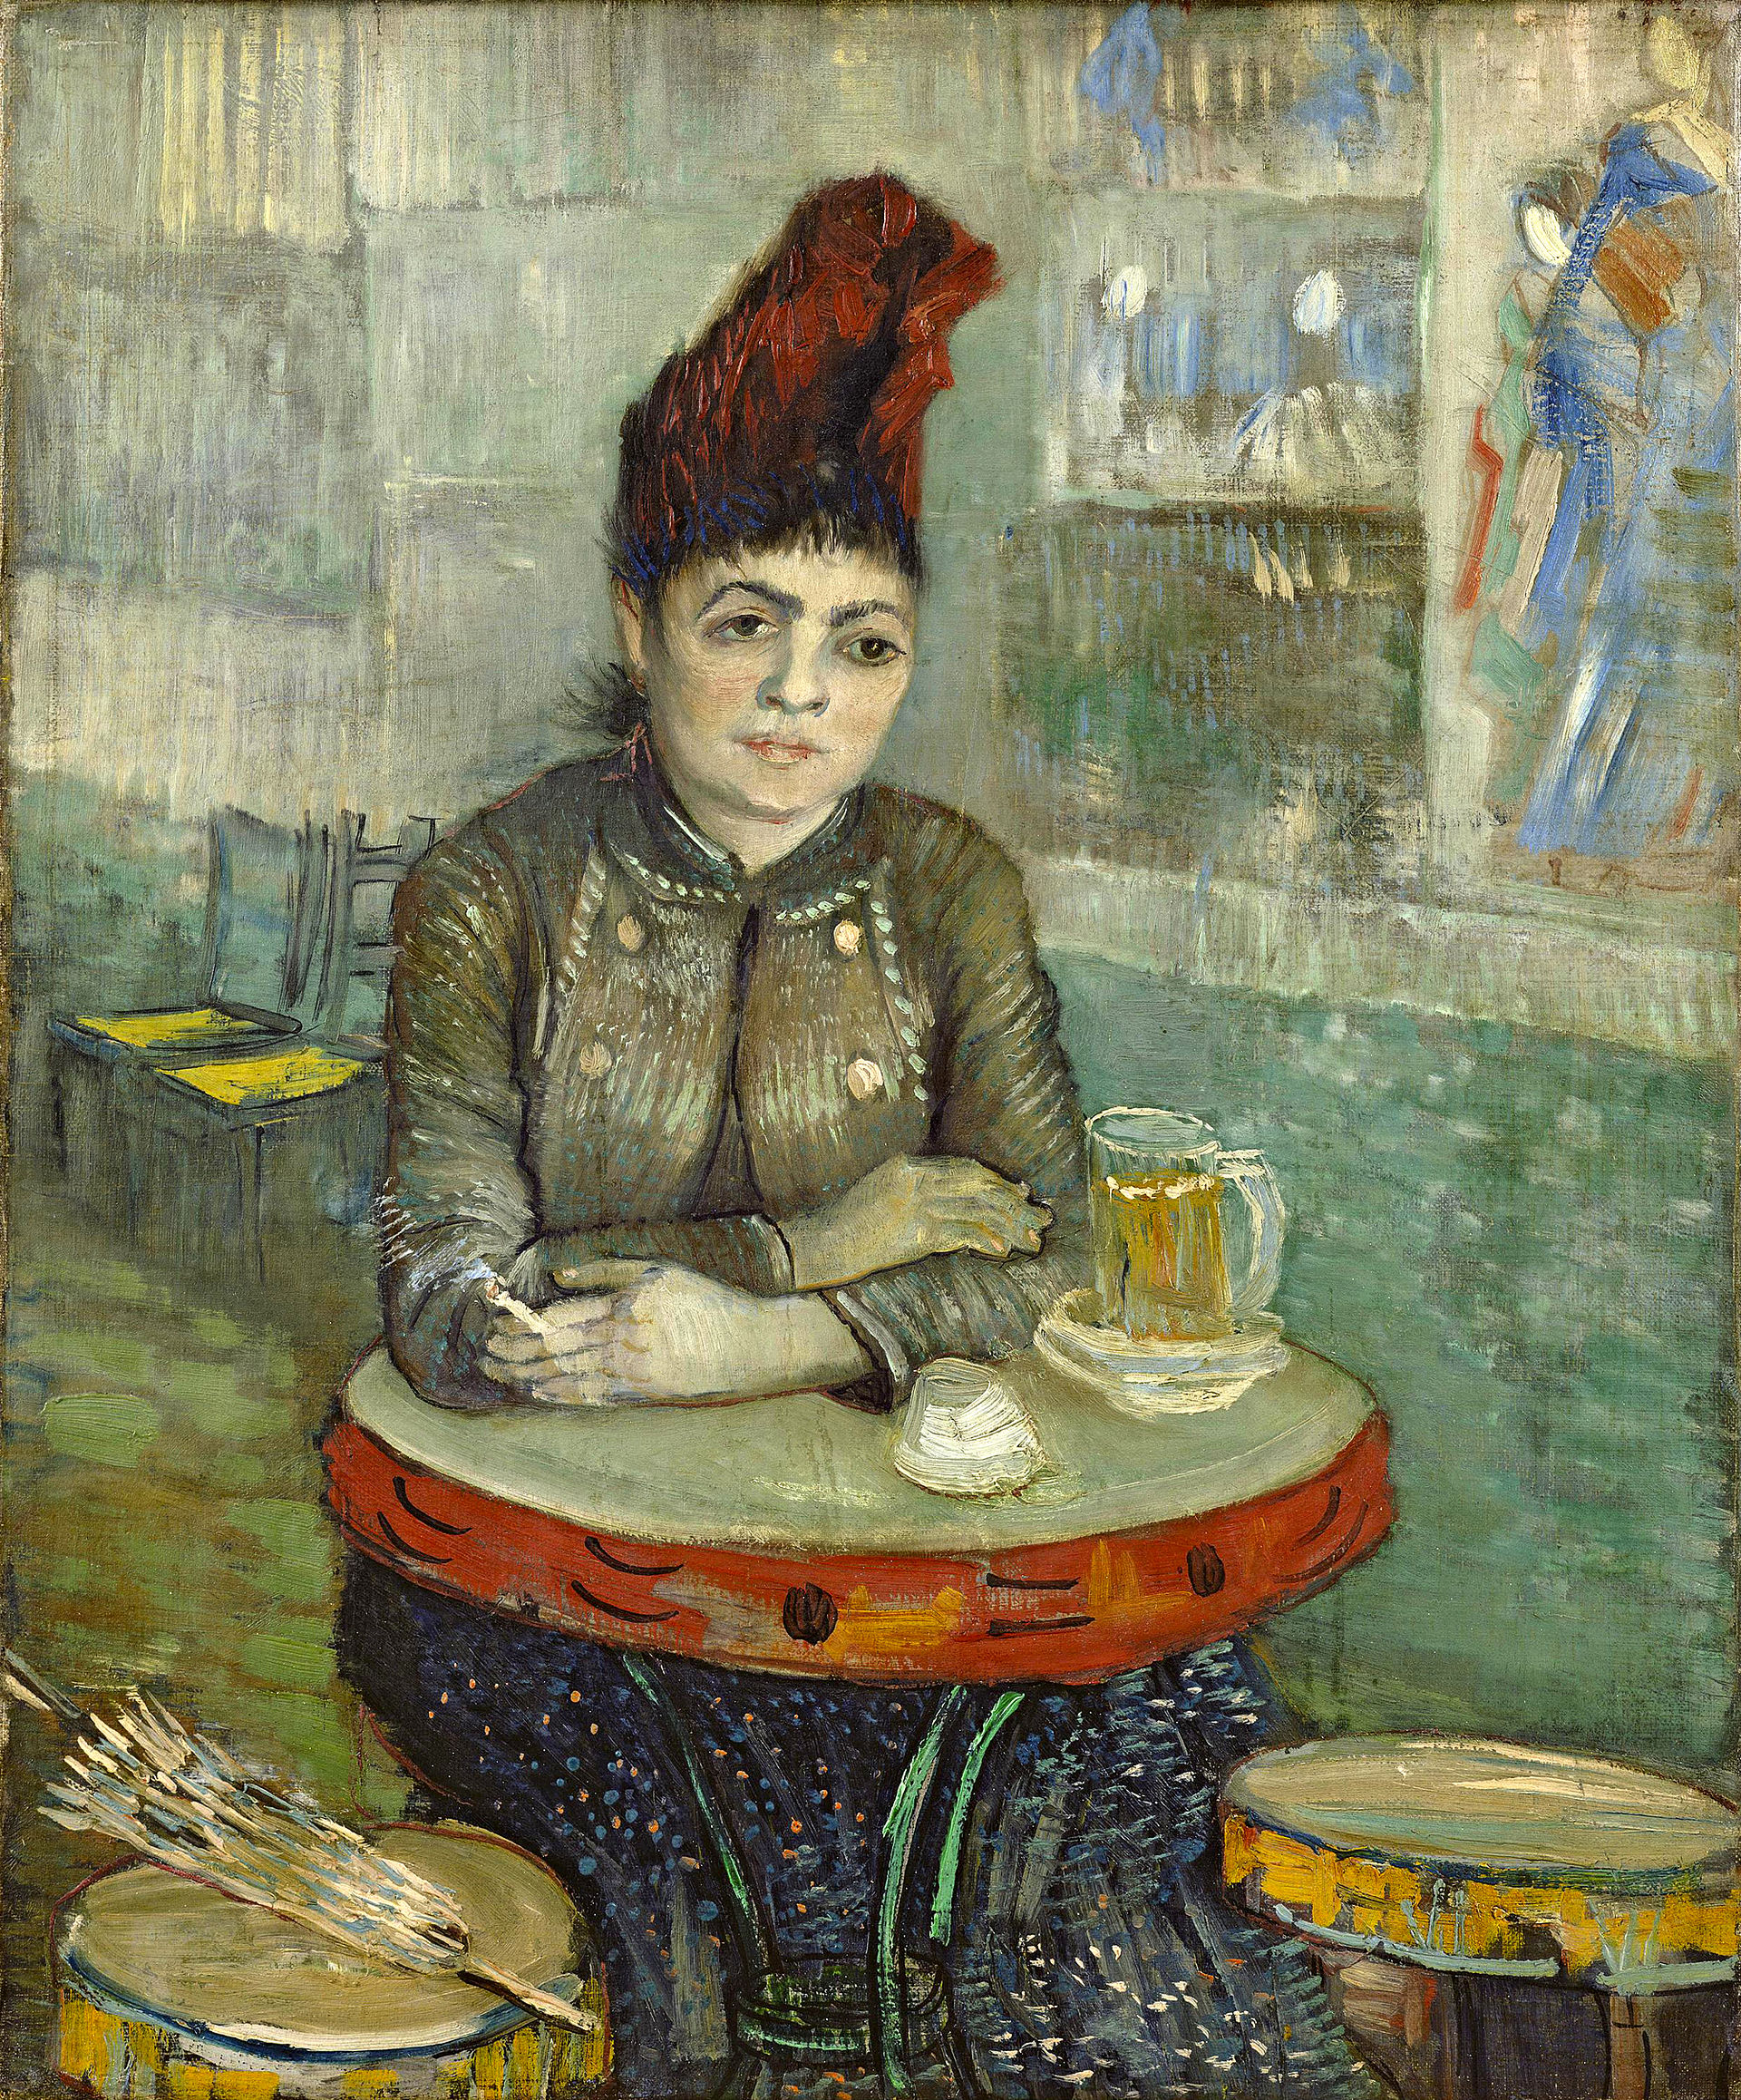 Agostina segatori sitting in the caf du tambourin wikipedia for Van gogh paintings locations